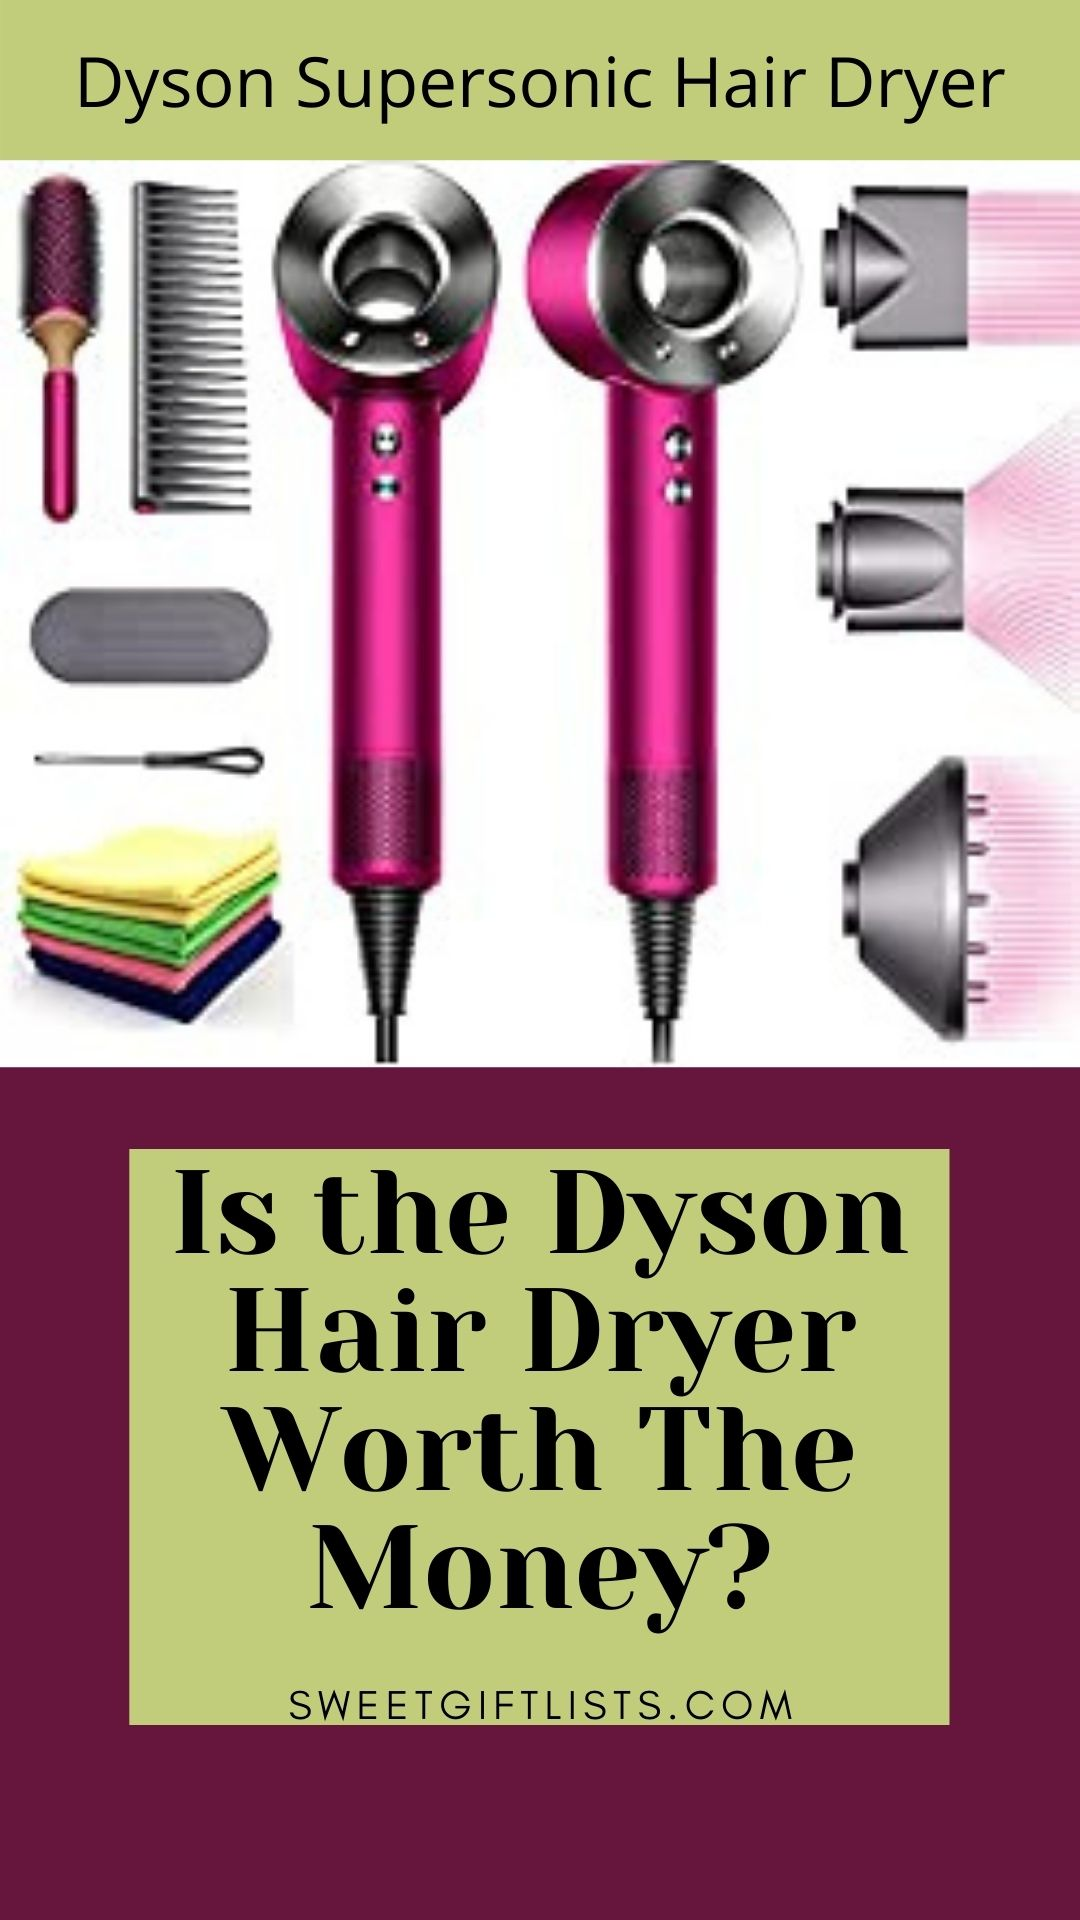 Is the Dyson Hair Dryer Worth The Money?